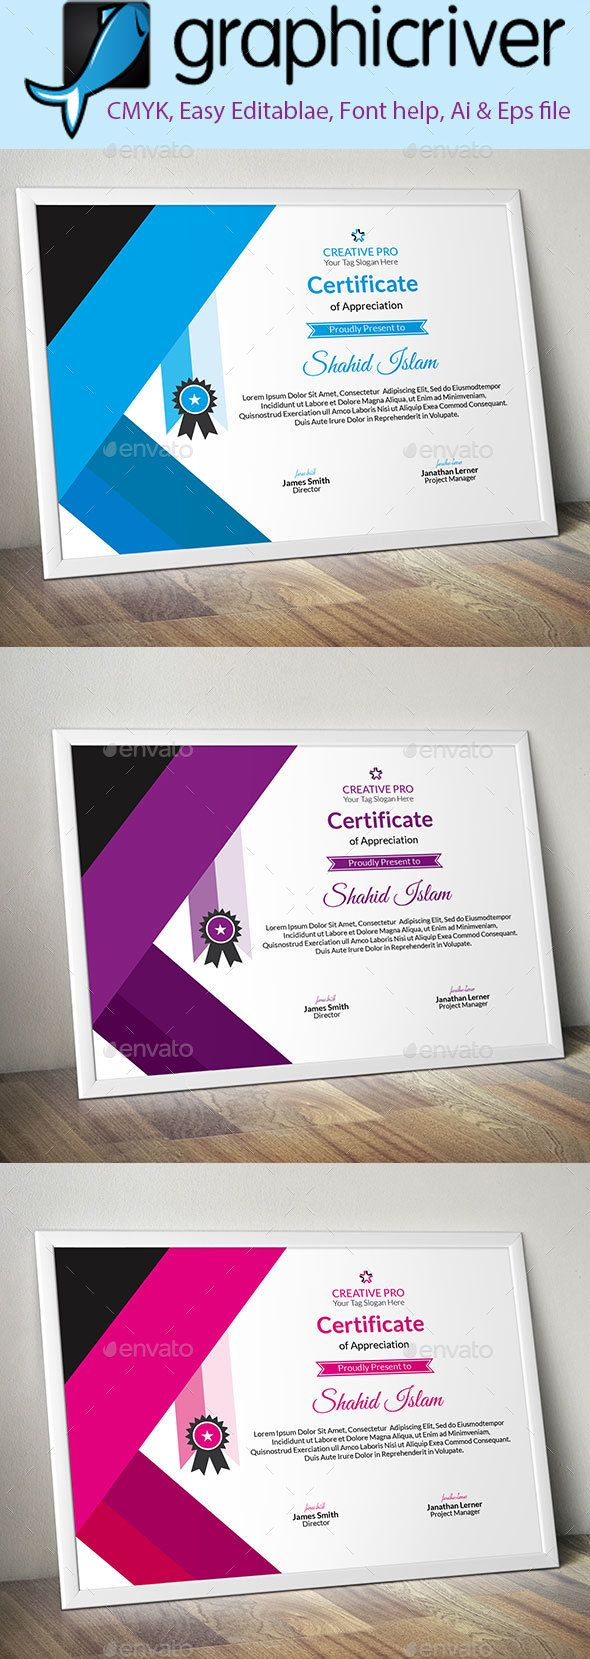 Creating Certificate Templates